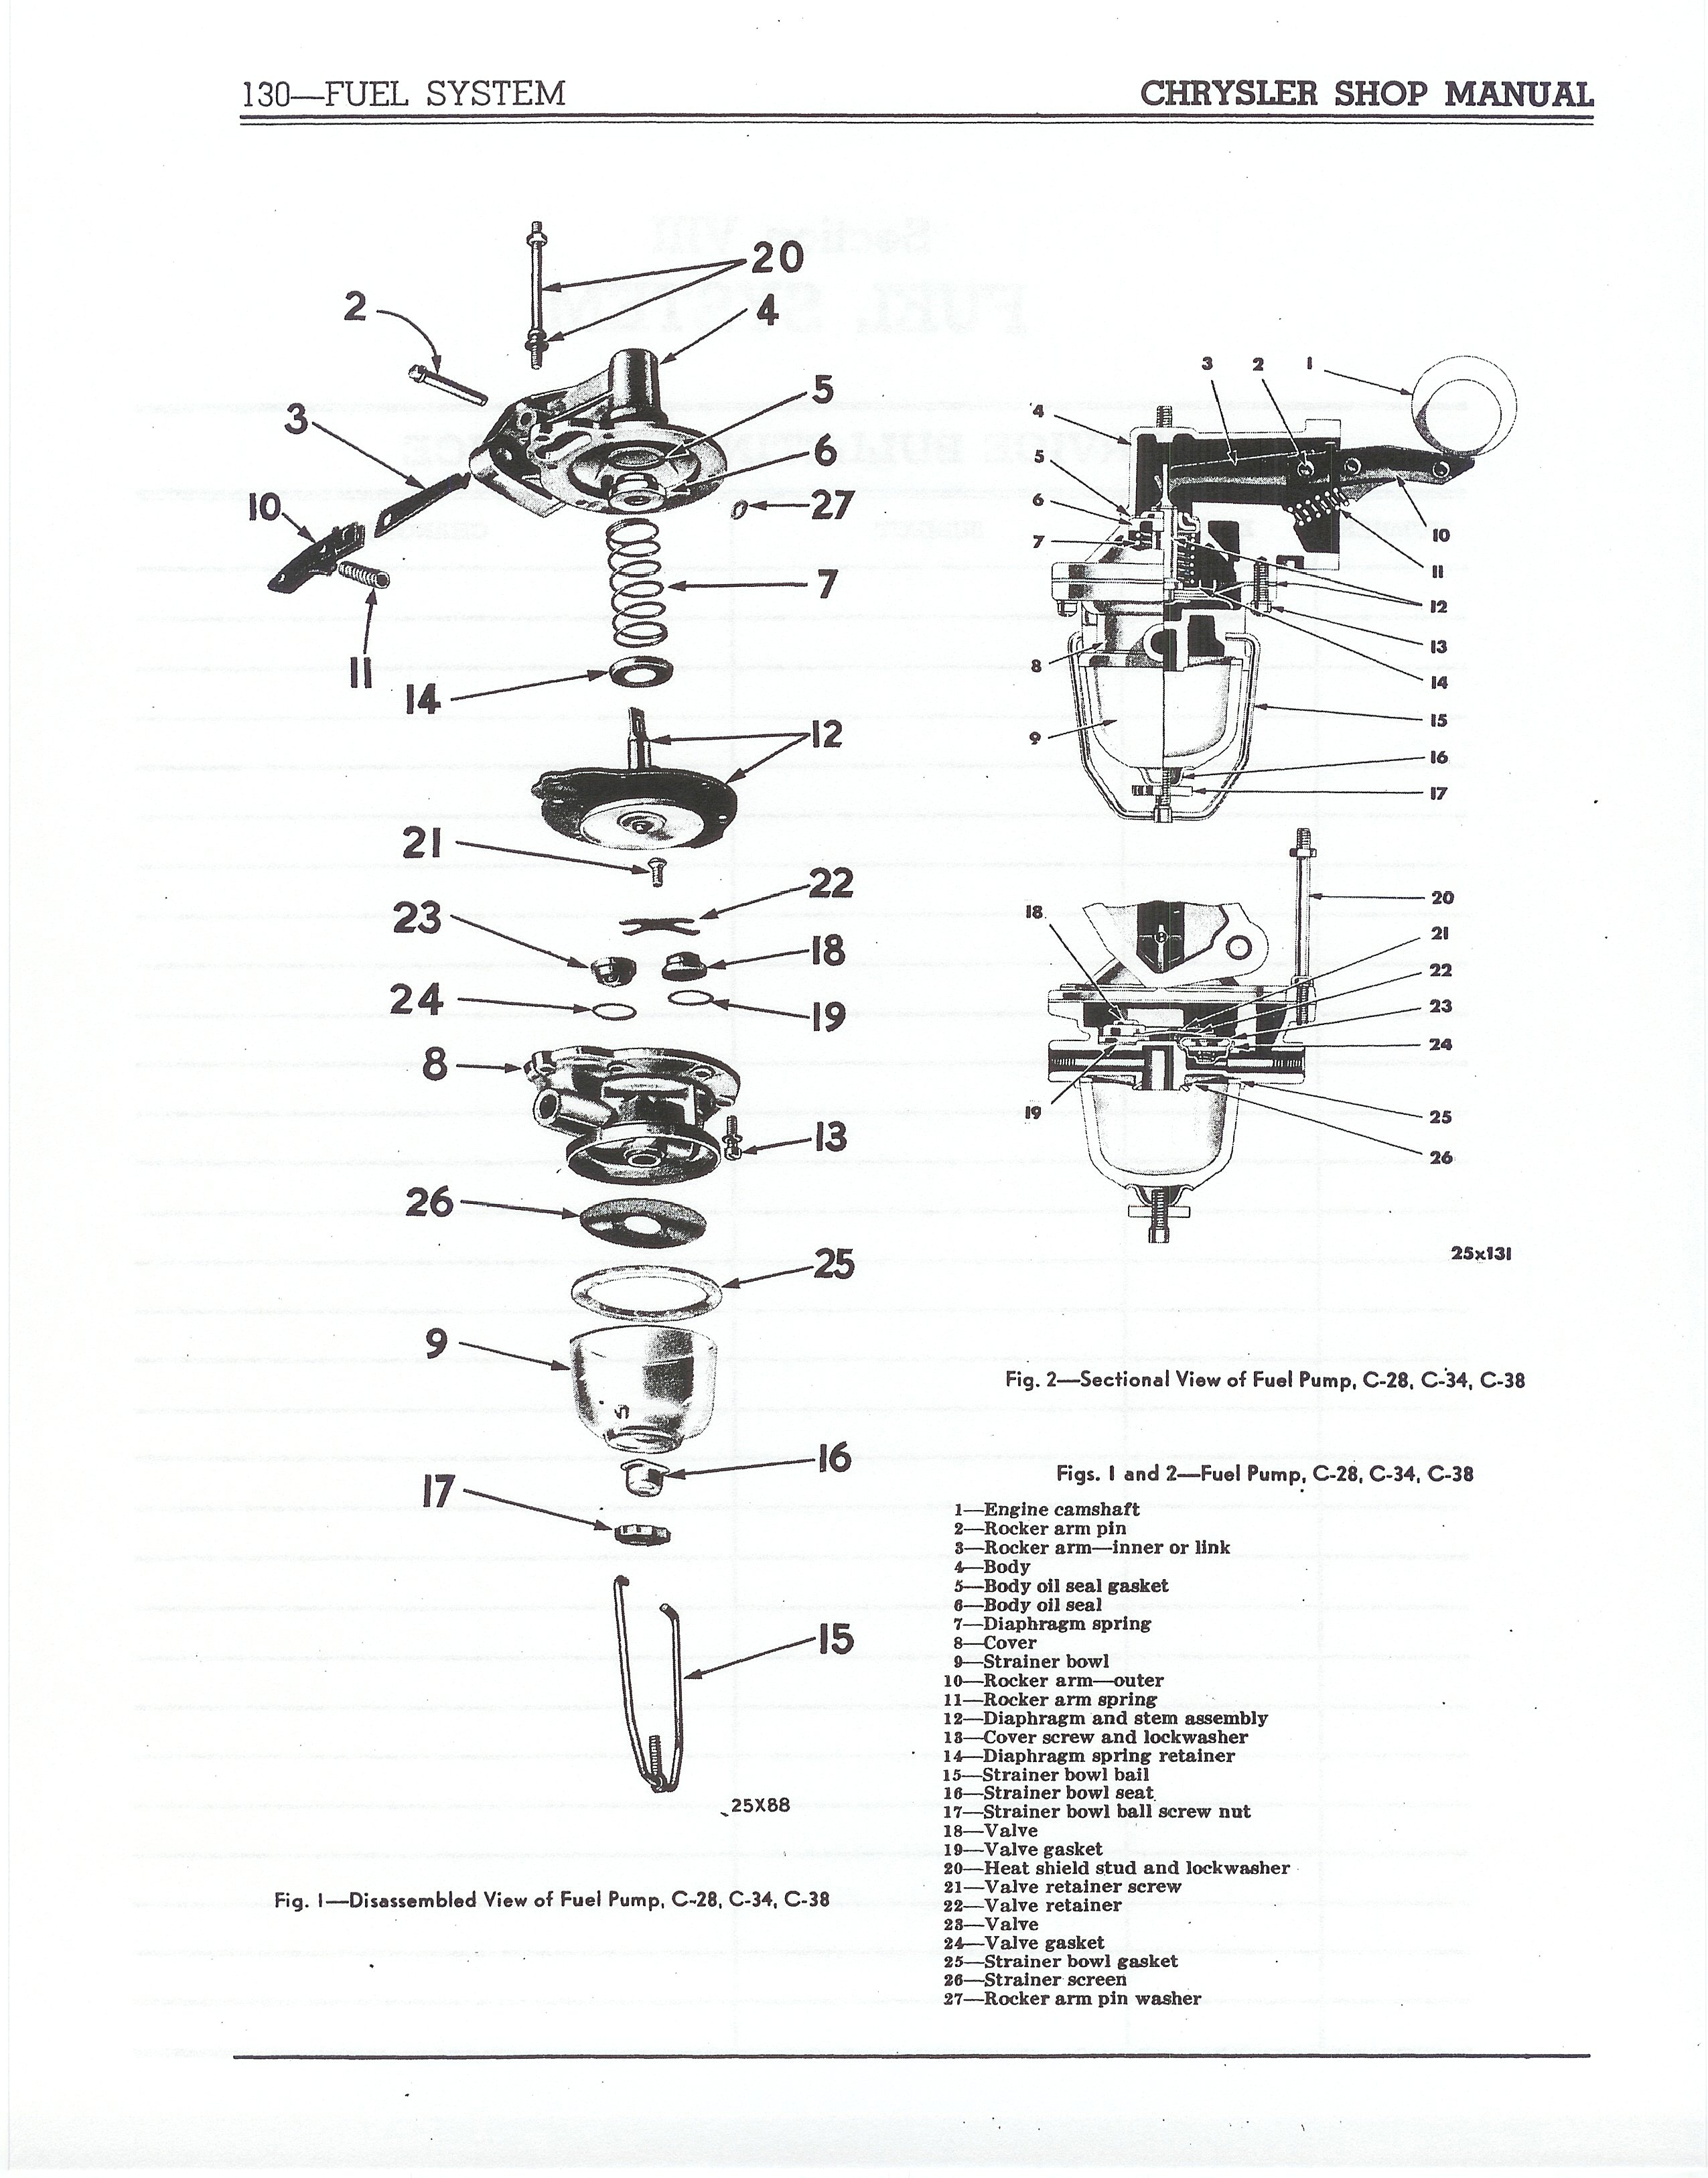 1941 Chrysler Shop Manual